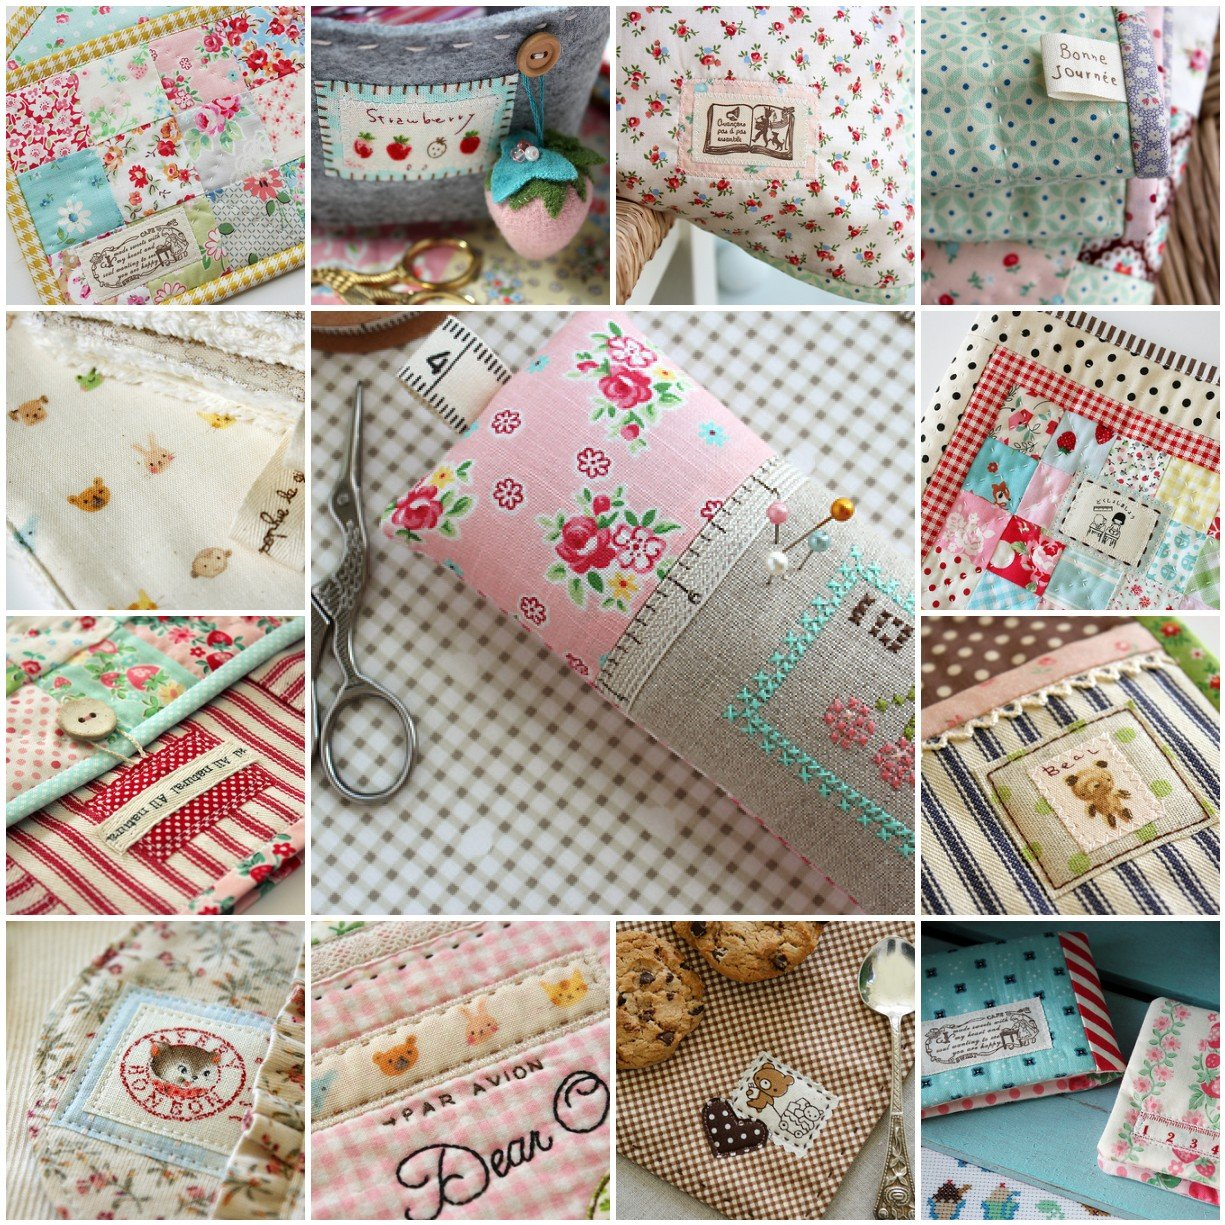 flic-flac 200pcs 4 x 4 inches (10cmx10cm) Cotton Craft Fabric Bundle Squares Patchwork Lint DIY Sewing Scrapbooking Quilting Dot Pattern Artcraft by flic-flac (Image #6)